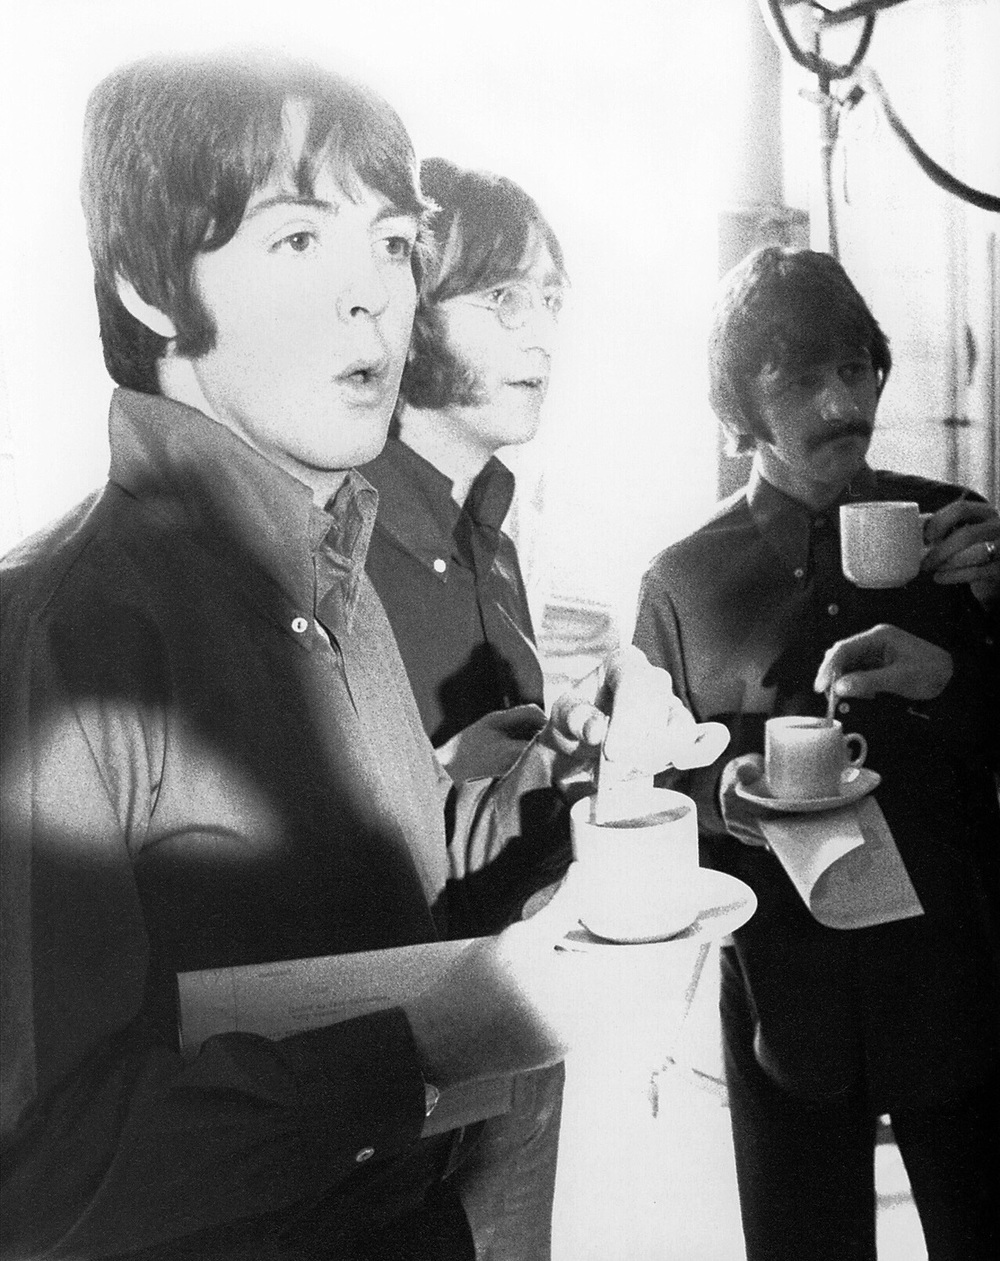 Paul McCartney, John Lennon and Ringo Starr enjoying tea and biscuits, 1968.